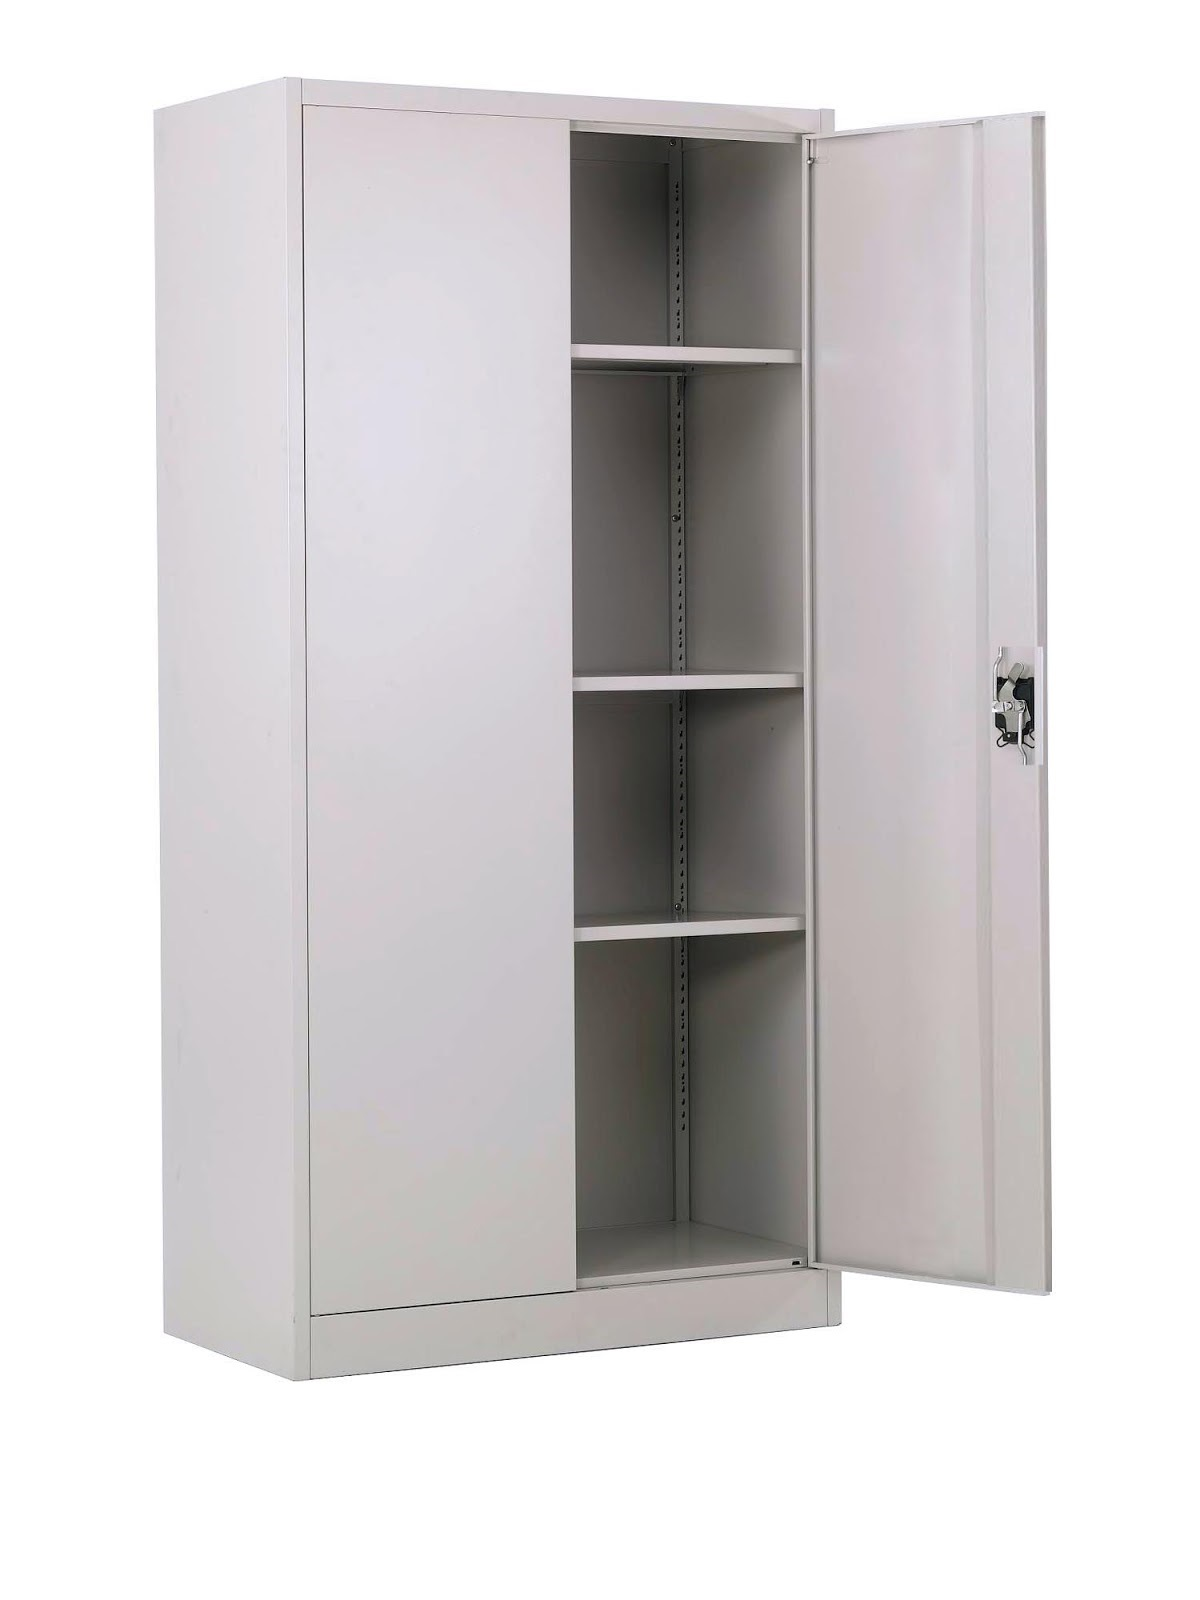 Focus Tnl Office Concept Swing Door Metal Cabinet